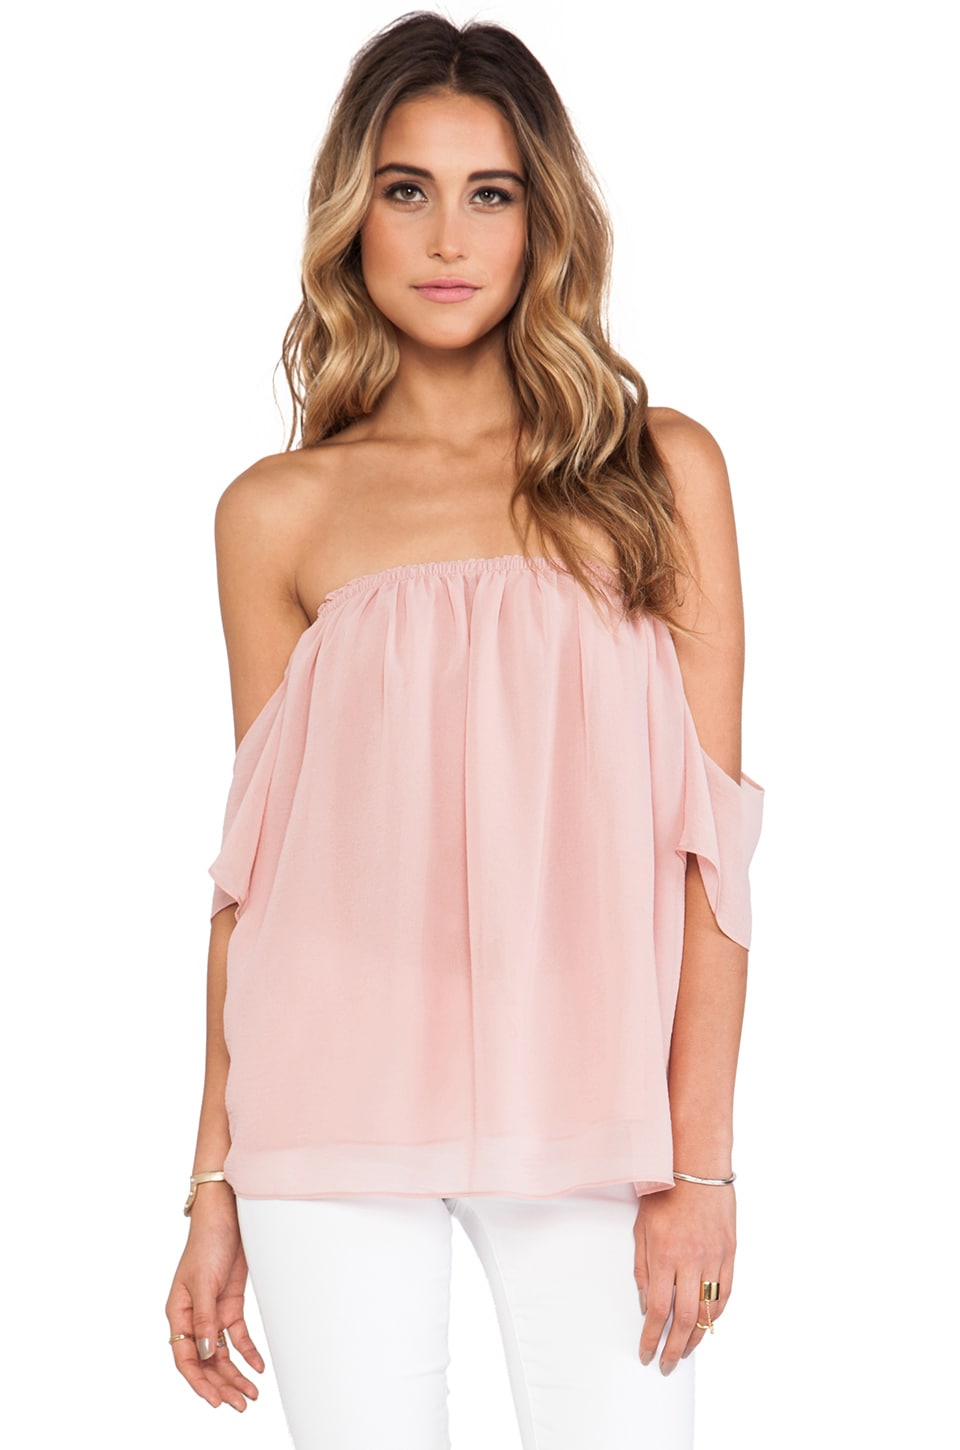 T-Bags LosAngeles Off The Shoulder Top in Baby Pink